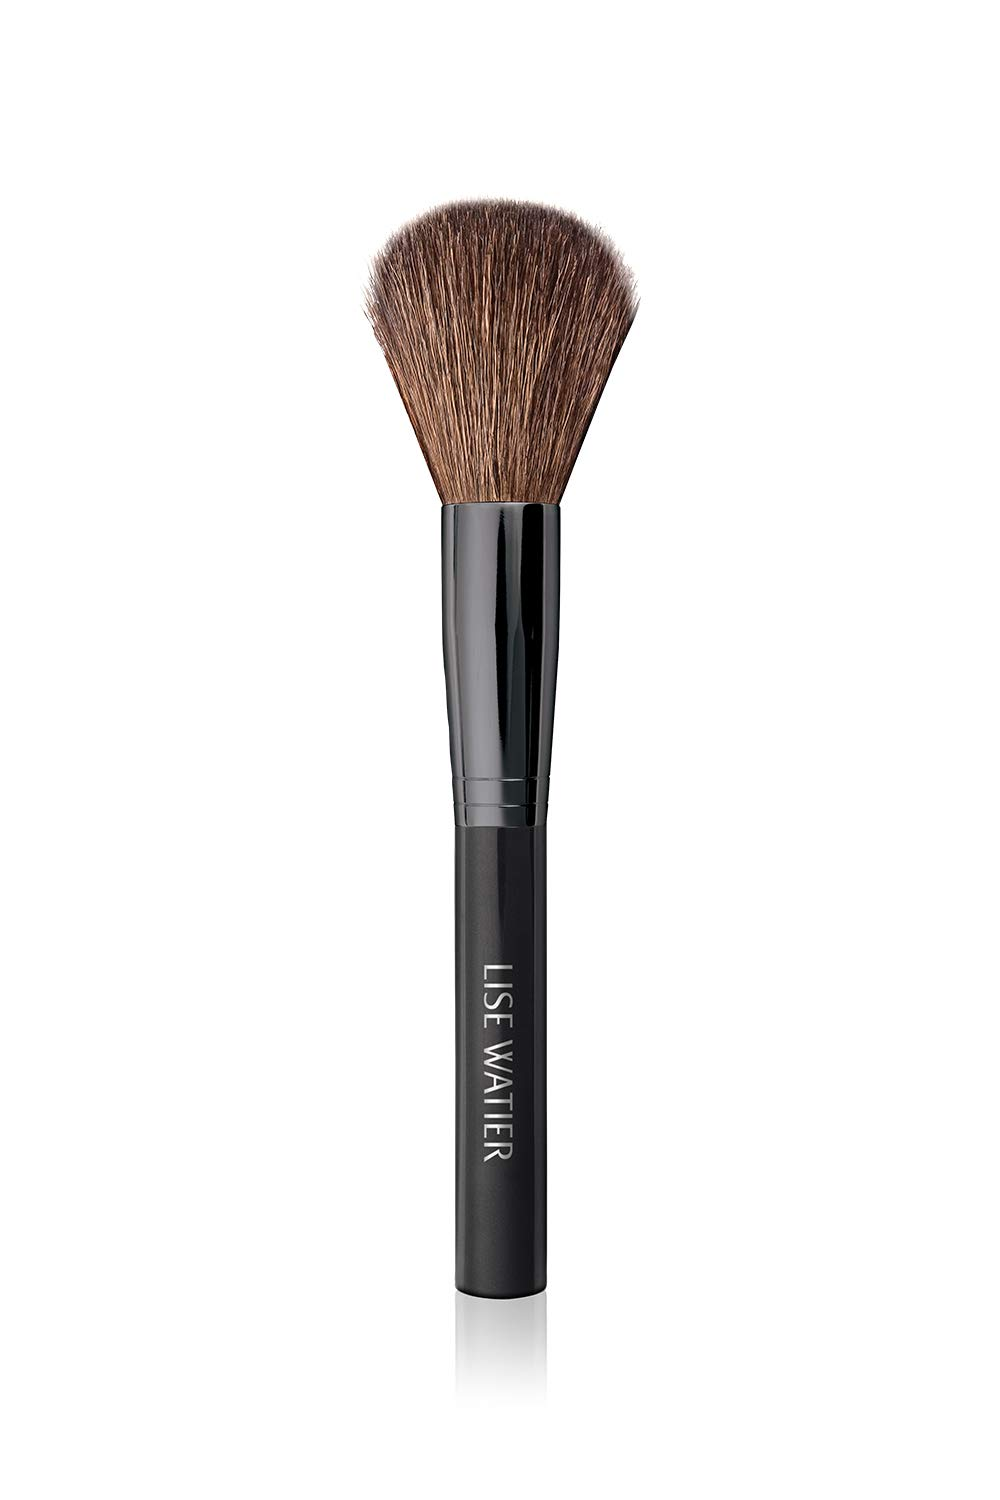 Lise Watier Loose Powder Brush, 1 count